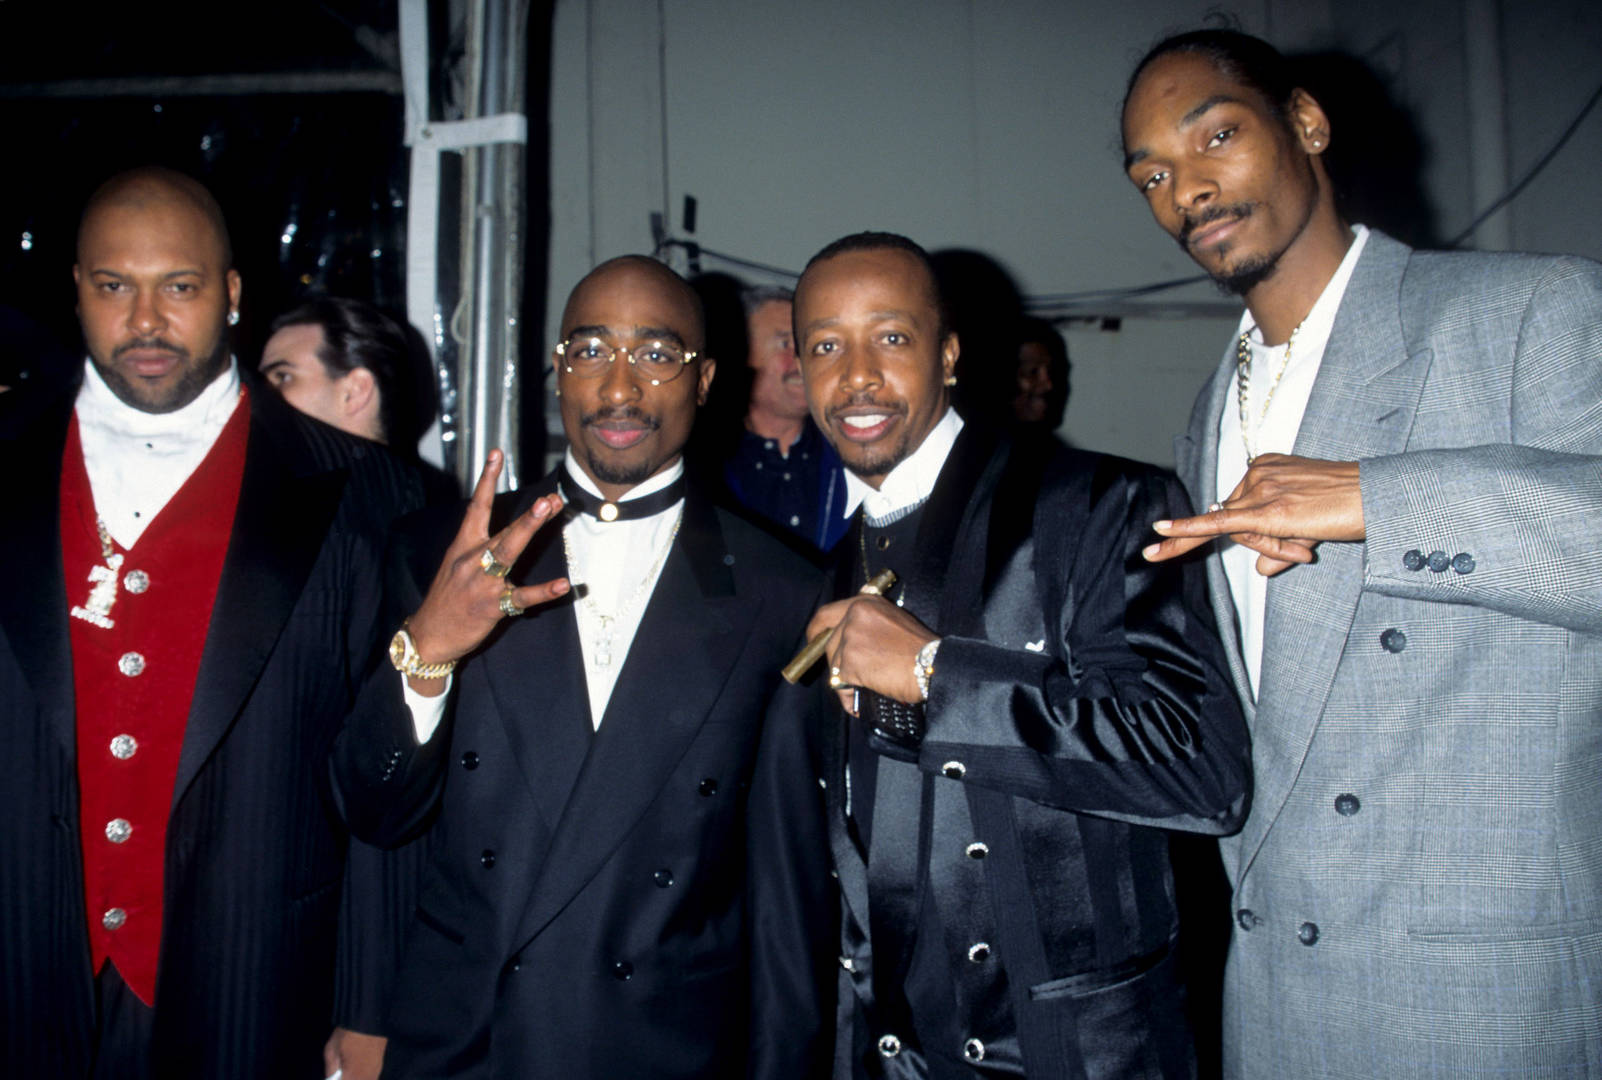 Snoop Dogg Shares Iconic 96' Death Row Squad Throwback Pic